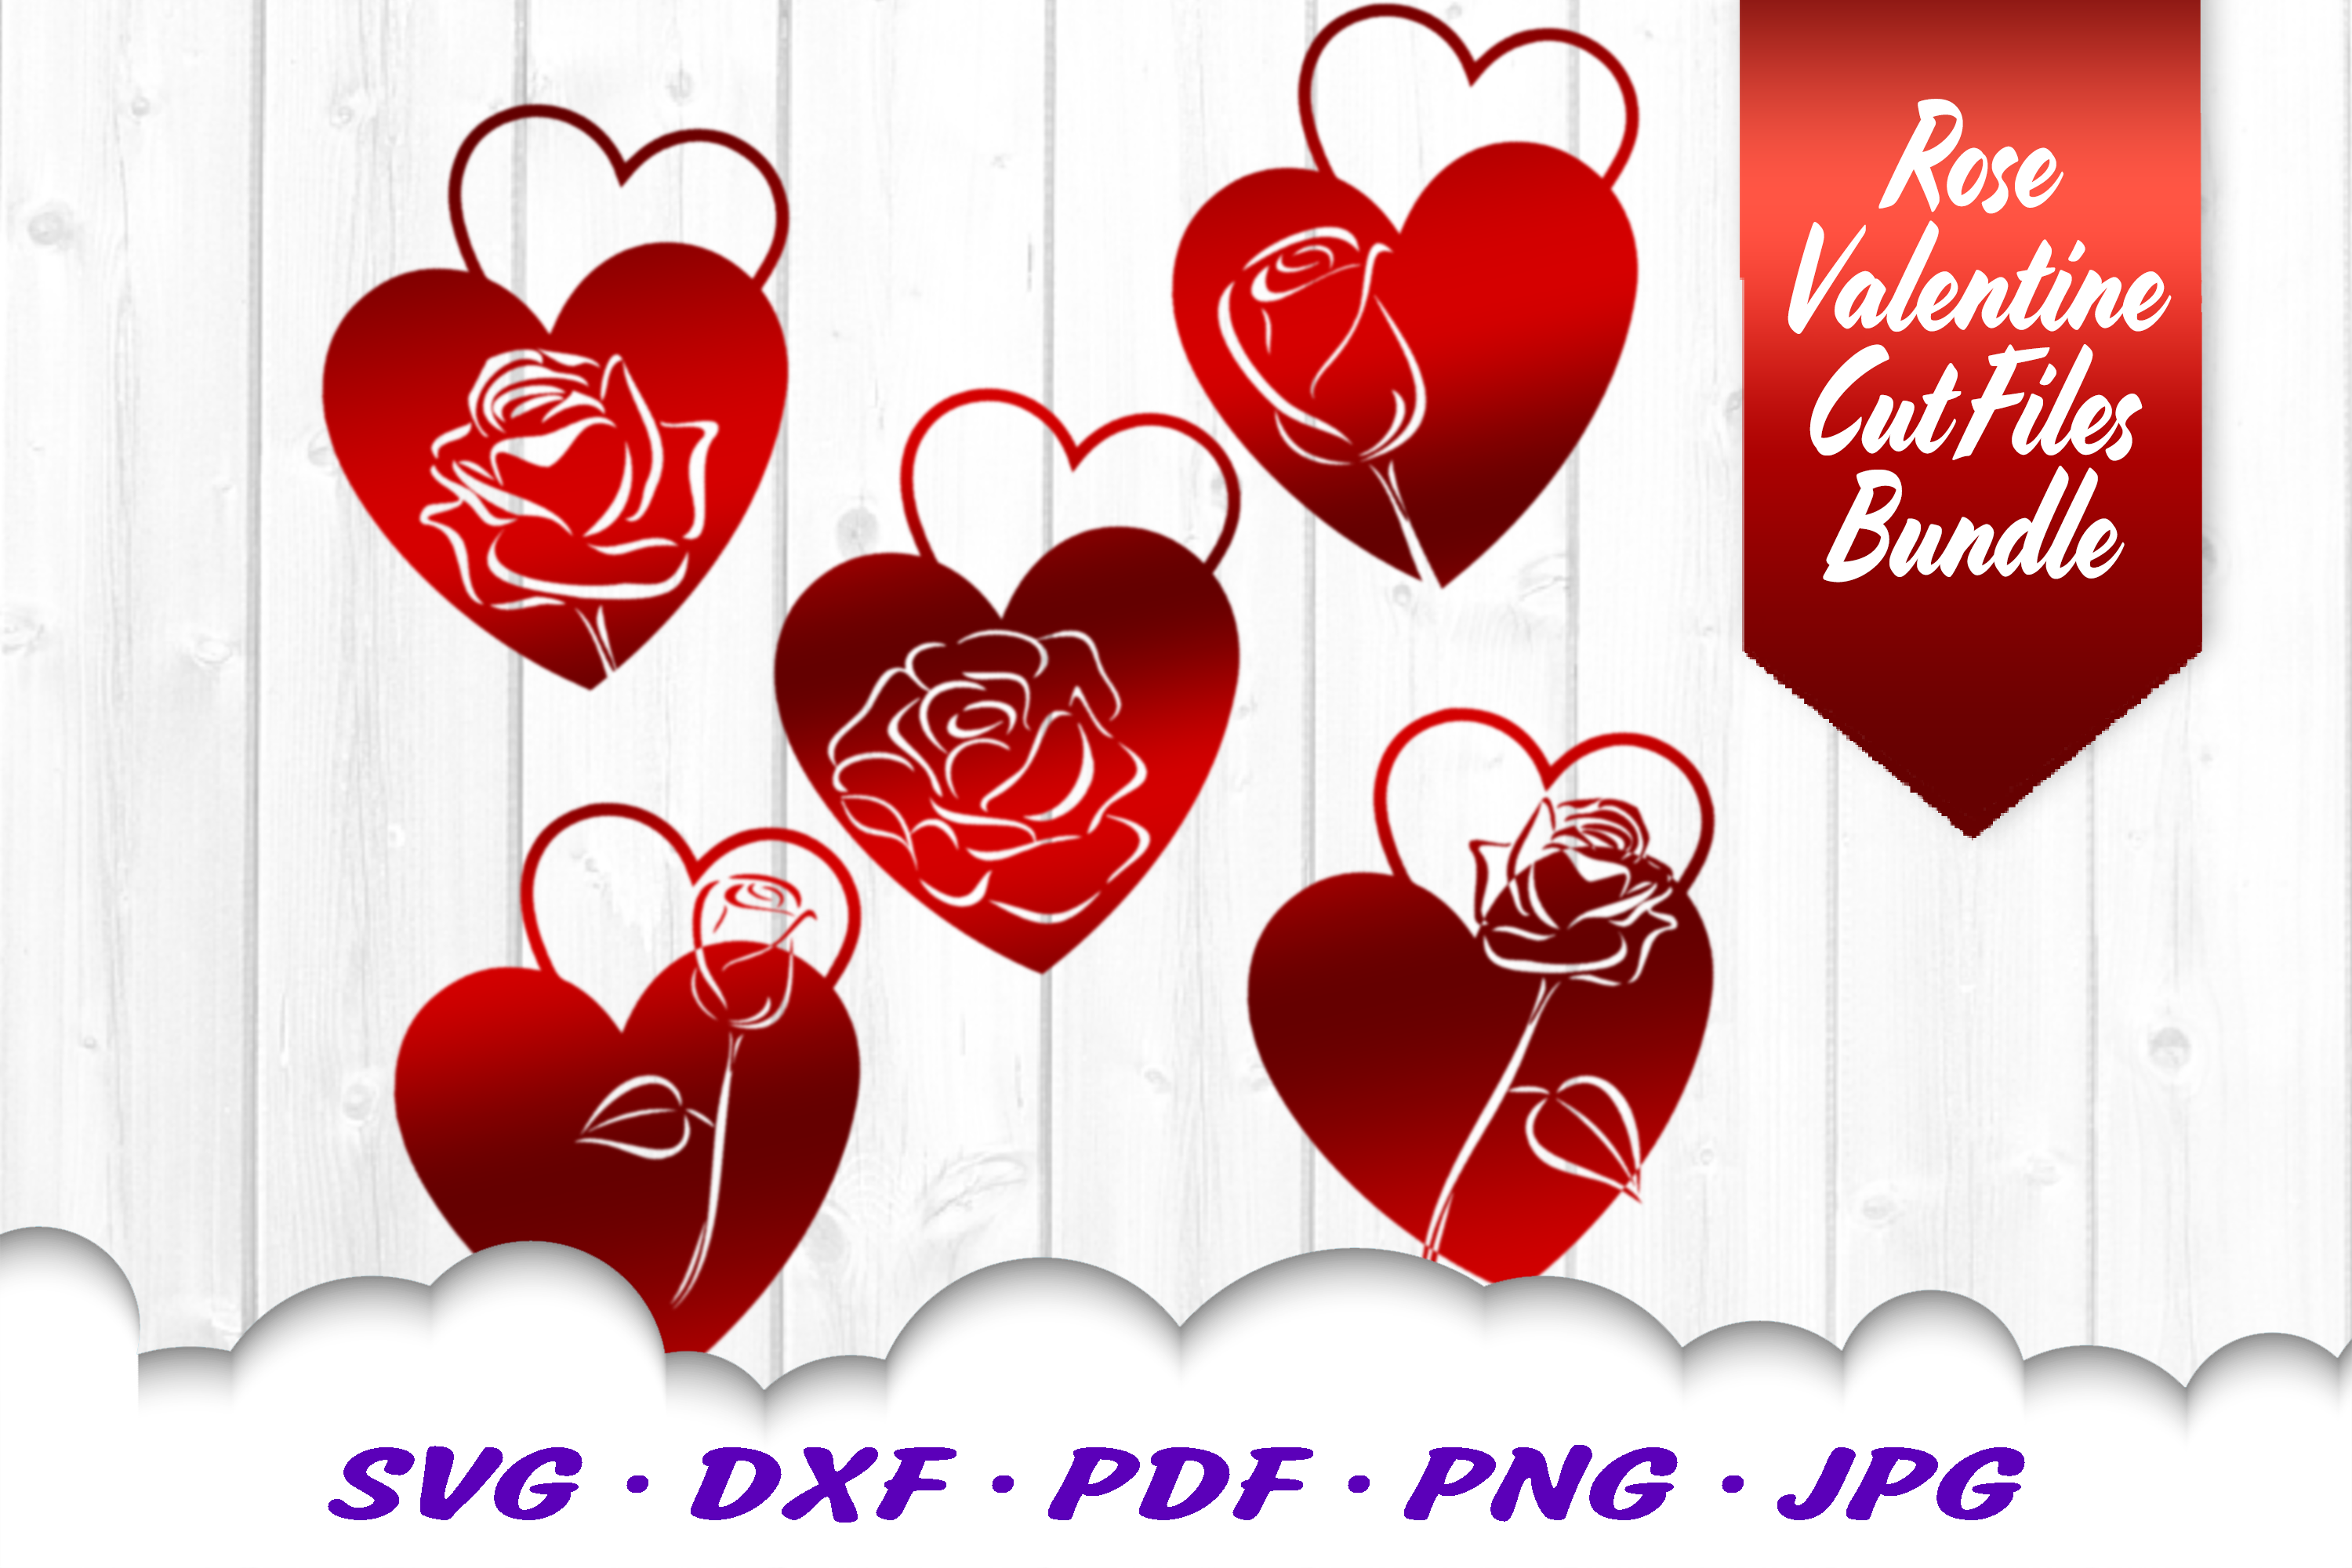 Valentines Day Rose Hearts SVG DXF Cut Files Bundle example image 1